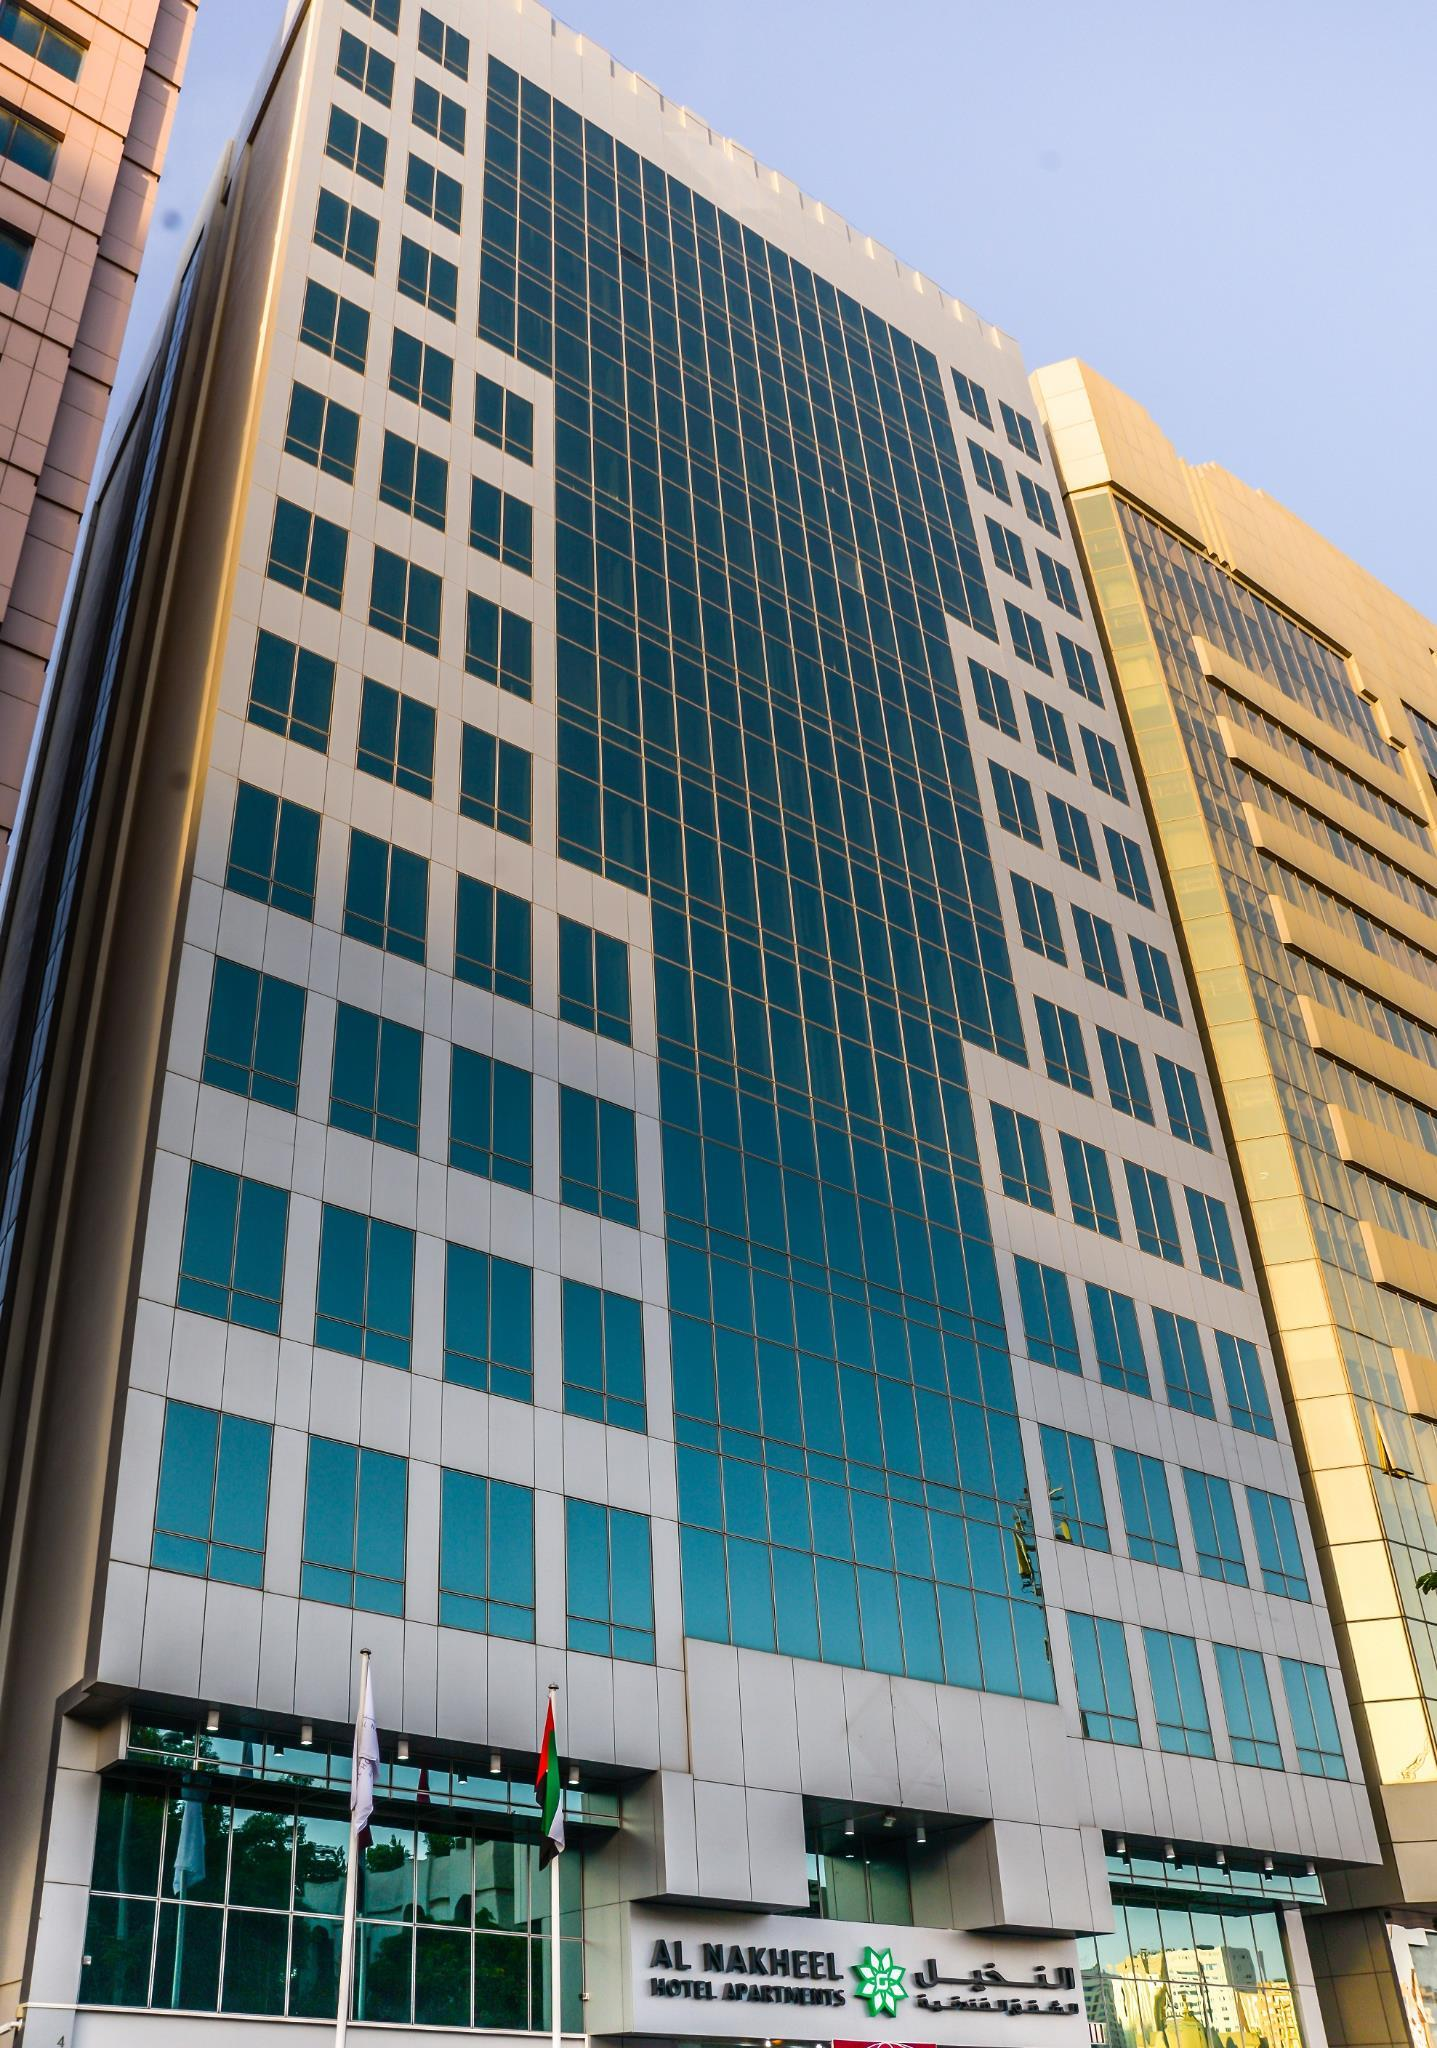 Al Nakheel Hotel Apartments by Mourouj Gloria